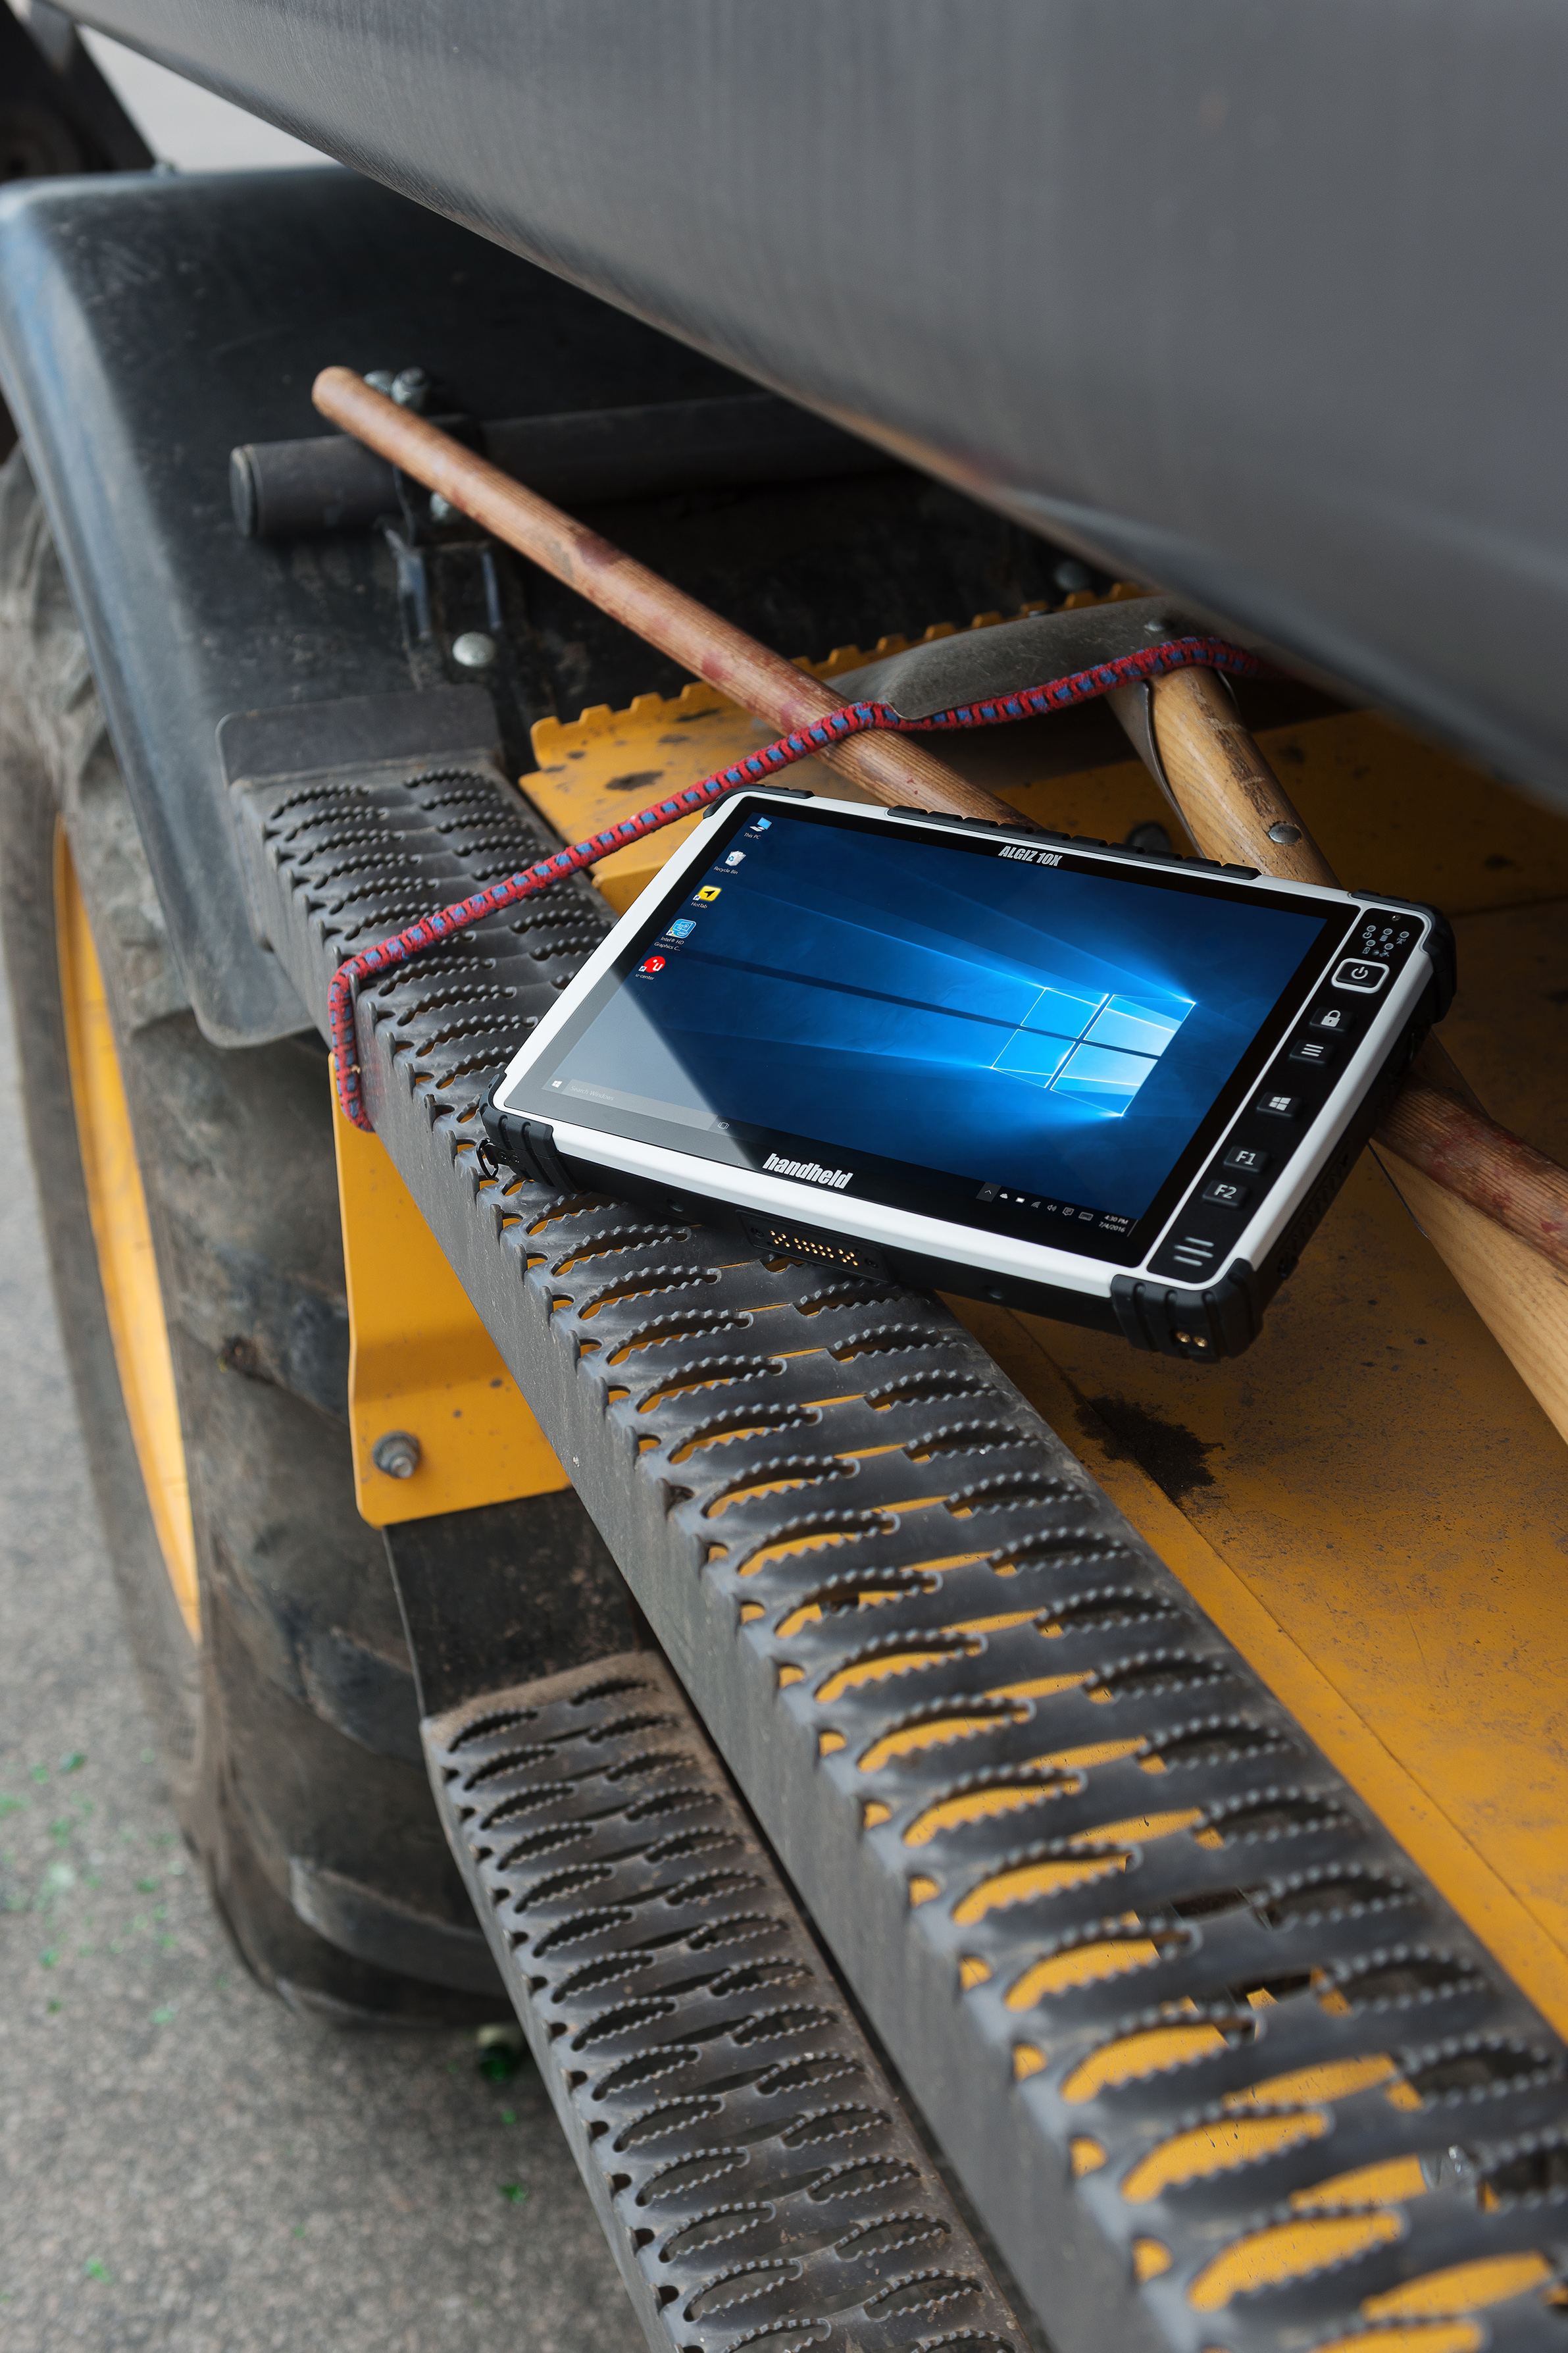 Algiz-10X-rugged-capacitive-tablet-Handheld.jpg